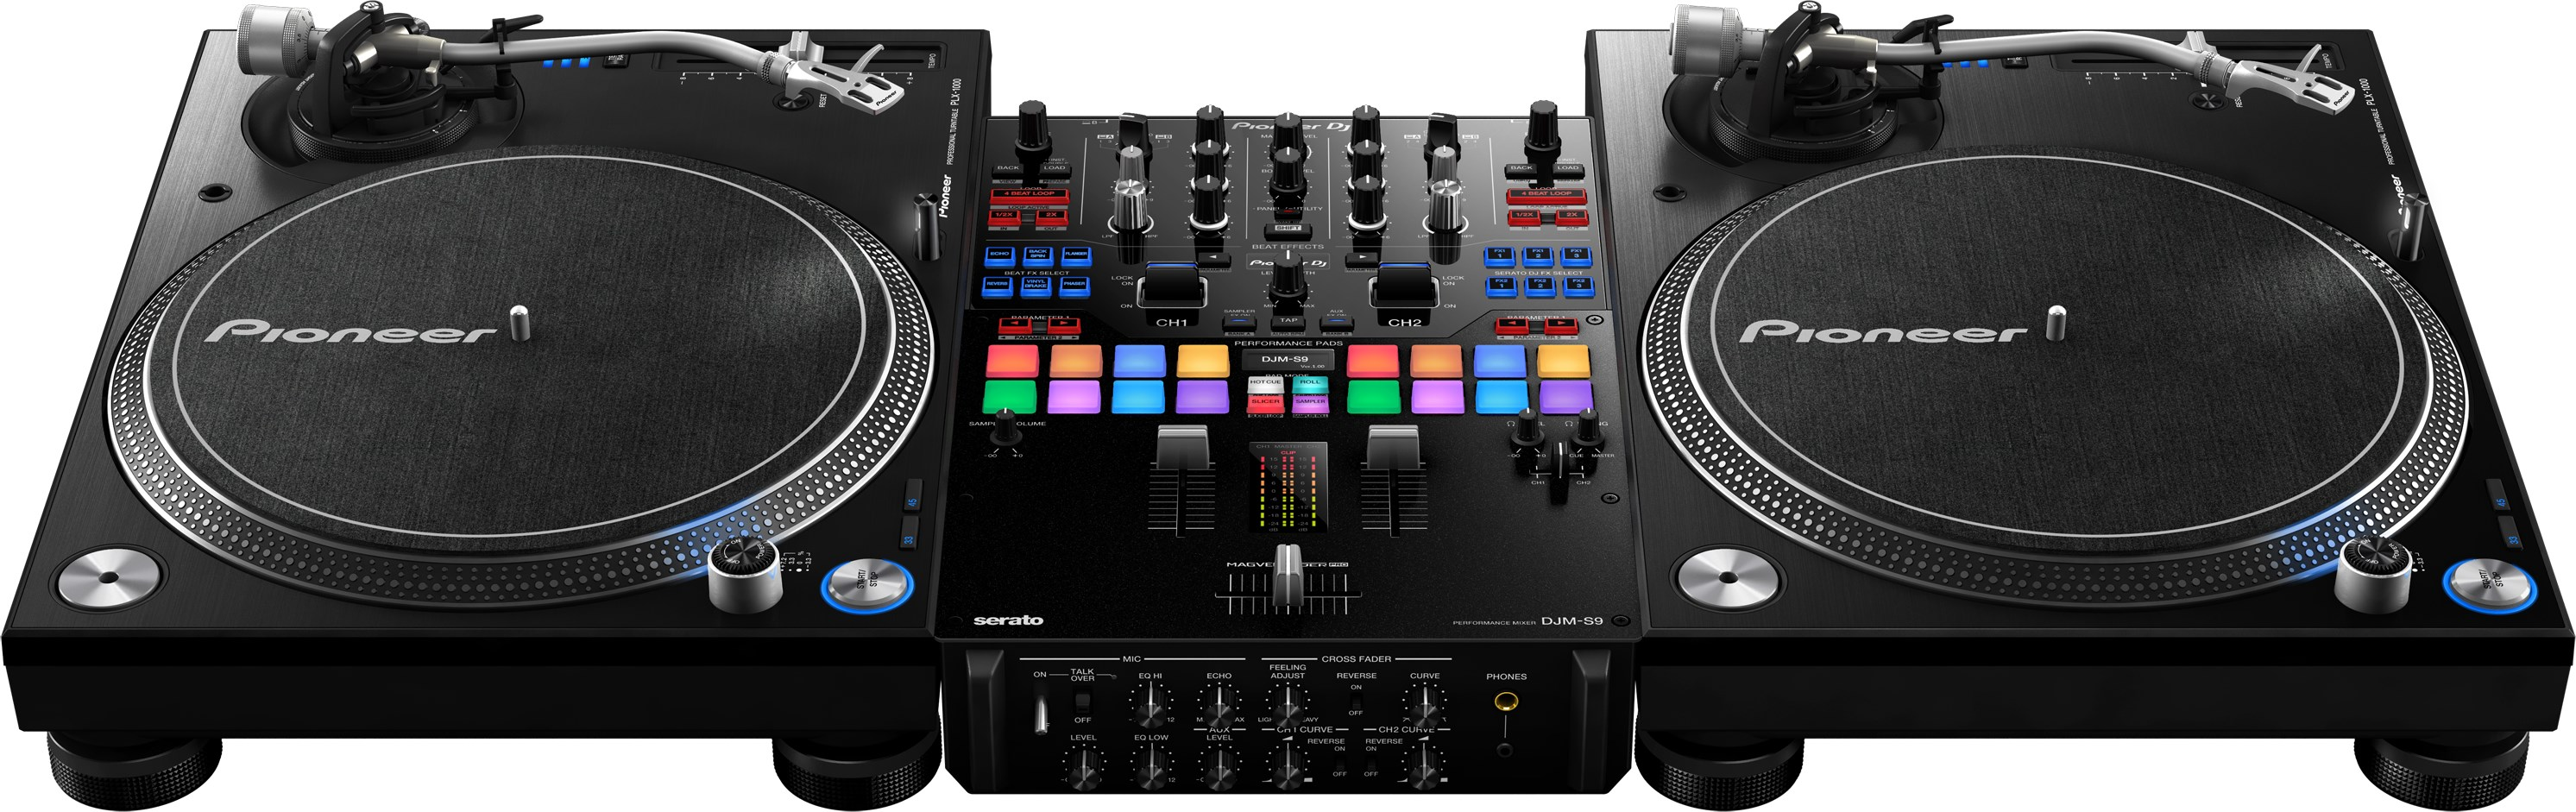 GRAVITY PIONEER DJ STORE DURBAN SOUTH AFRICA PIONEER DJMS9 MIXER EFFECTS CONTROLLER 0315072463